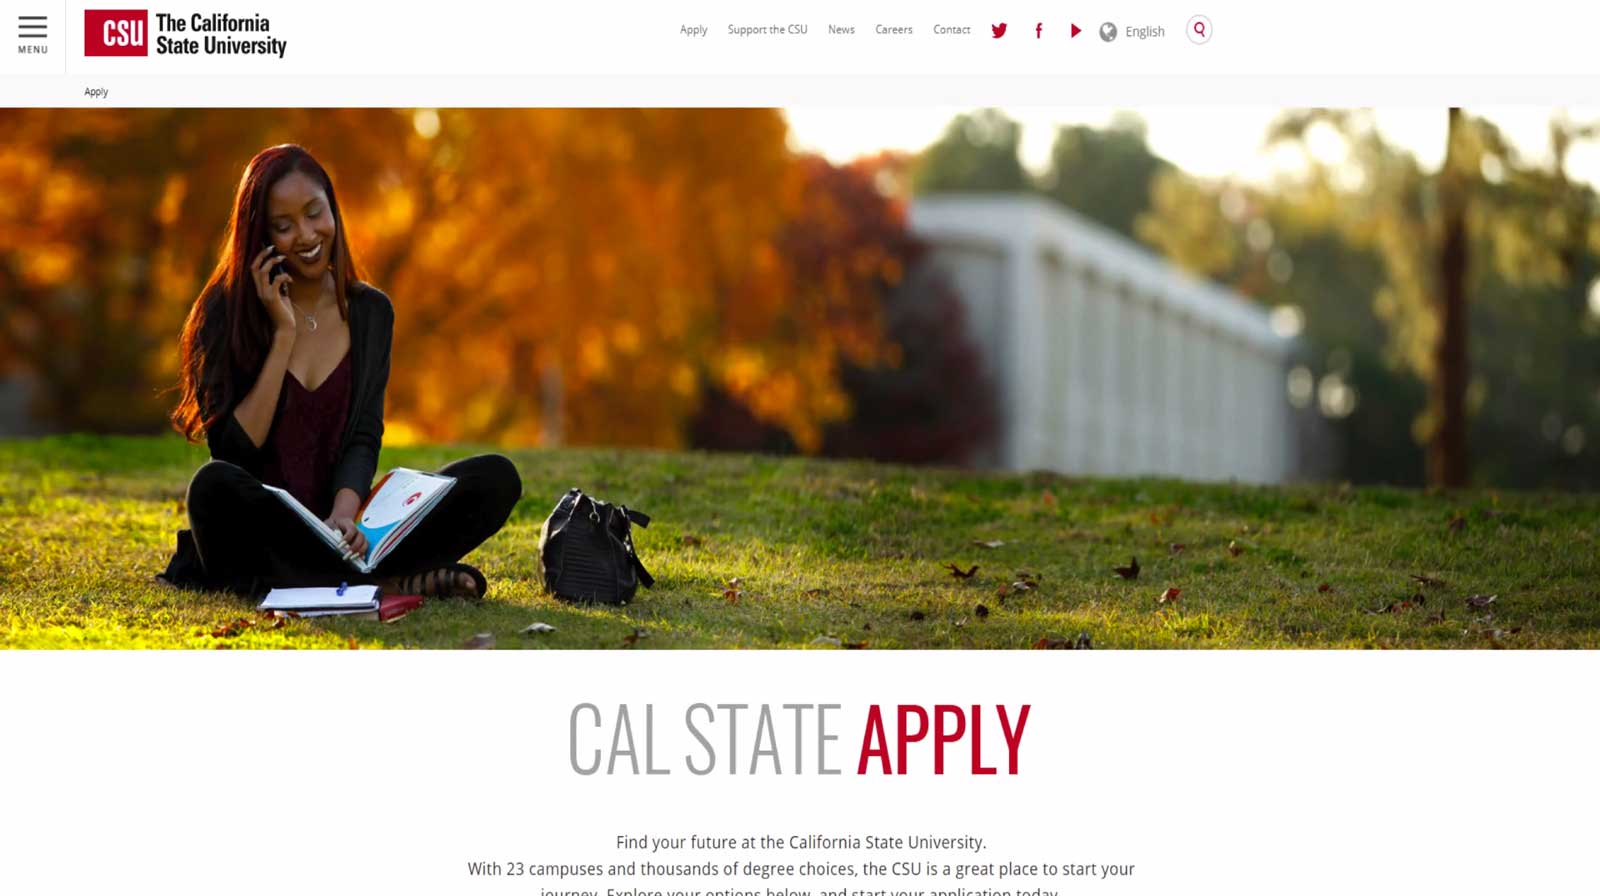 cal state university application essay Do cal state universities require application essays does the delaware state university require a essay there are 23 cal state university campuses.